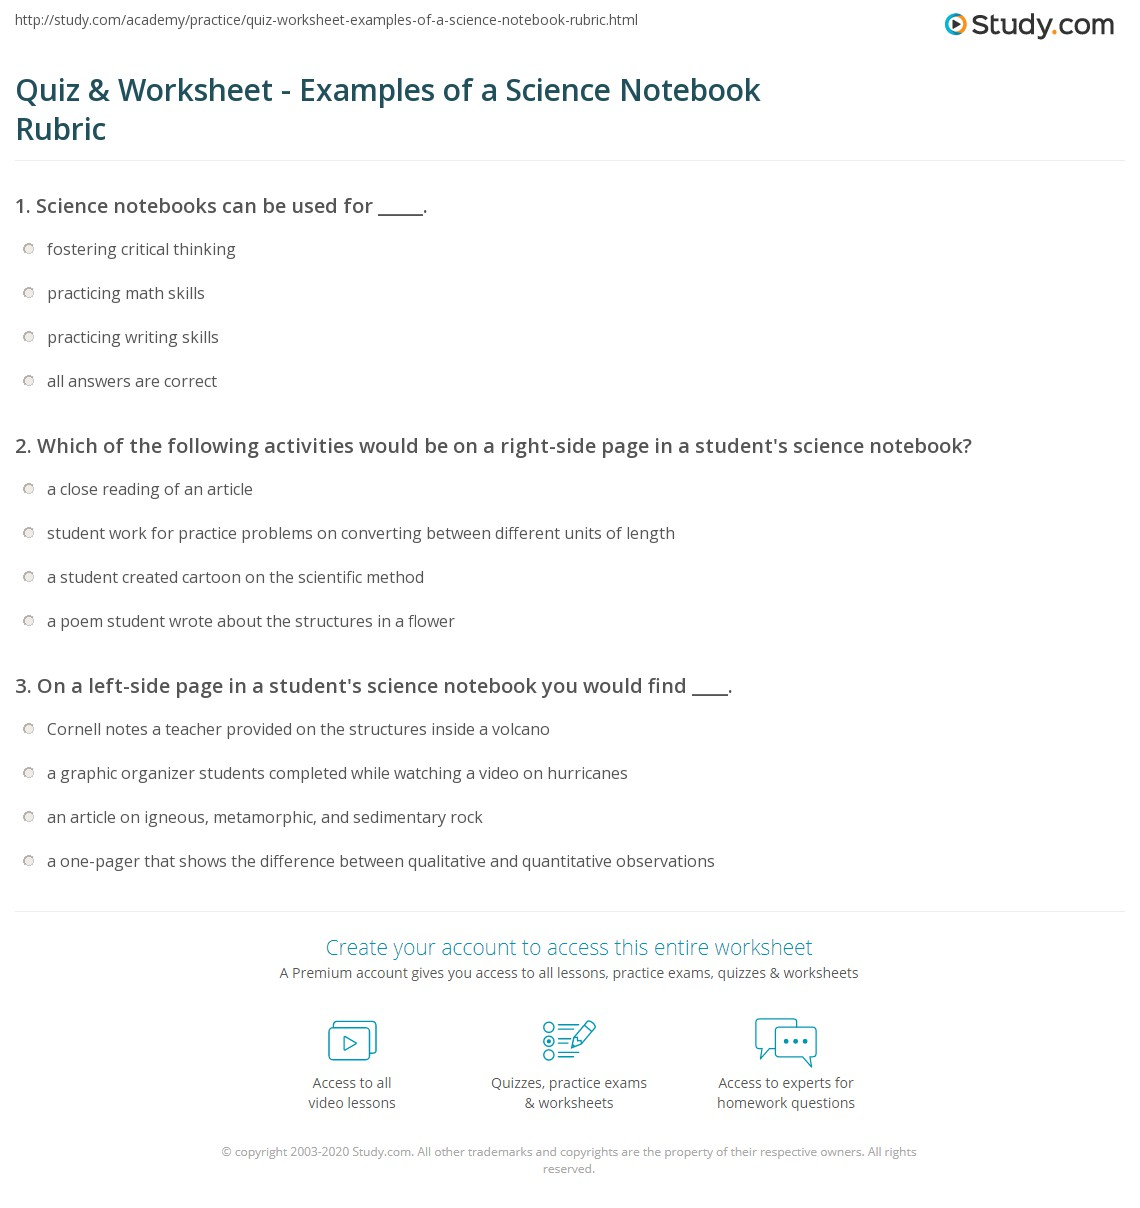 Quiz Worksheet Examples Of A Science Notebook Rubric Study